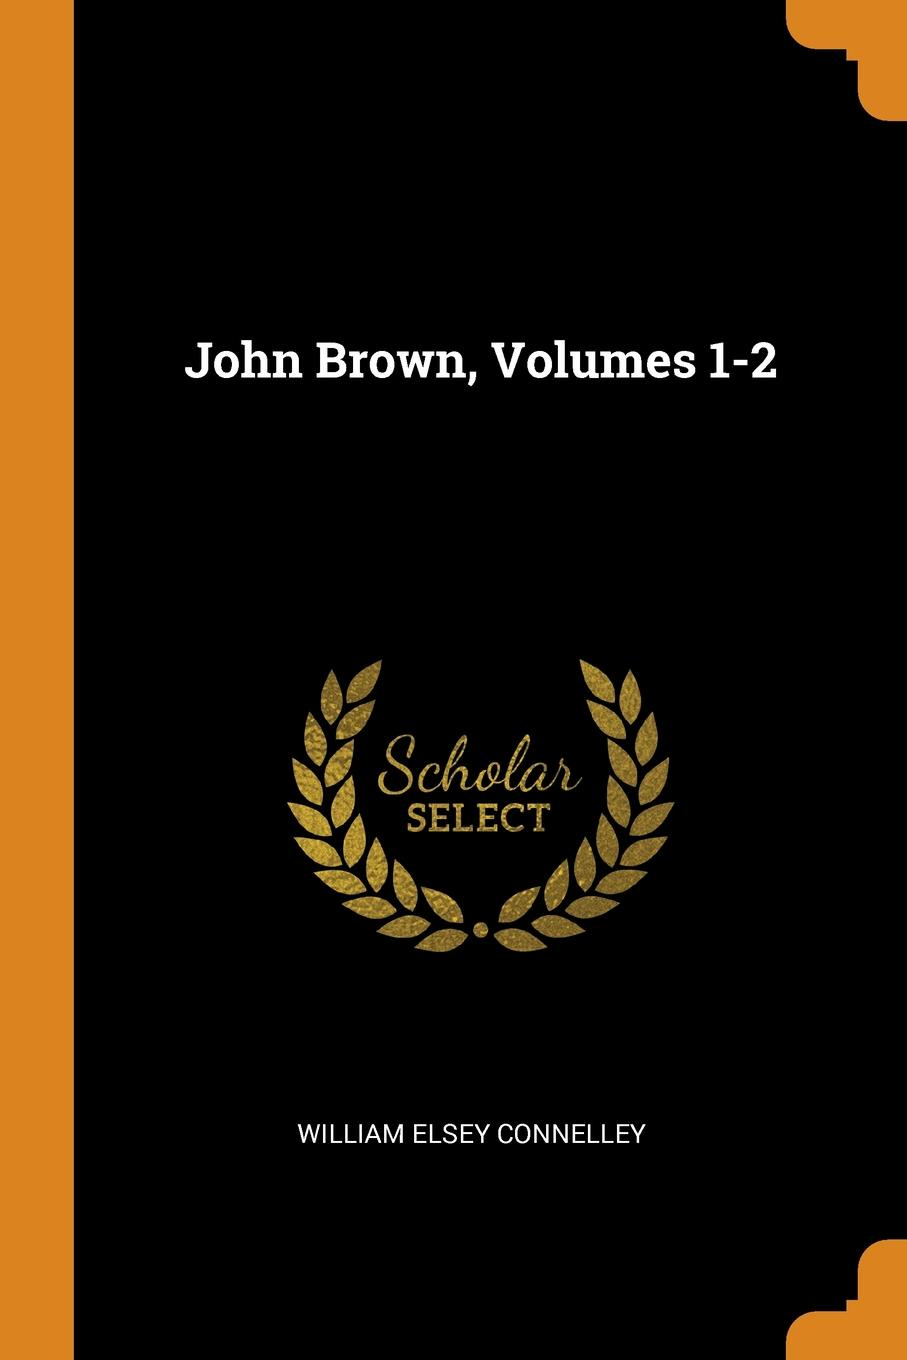 William Elsey Connelley John Brown, Volumes 1-2